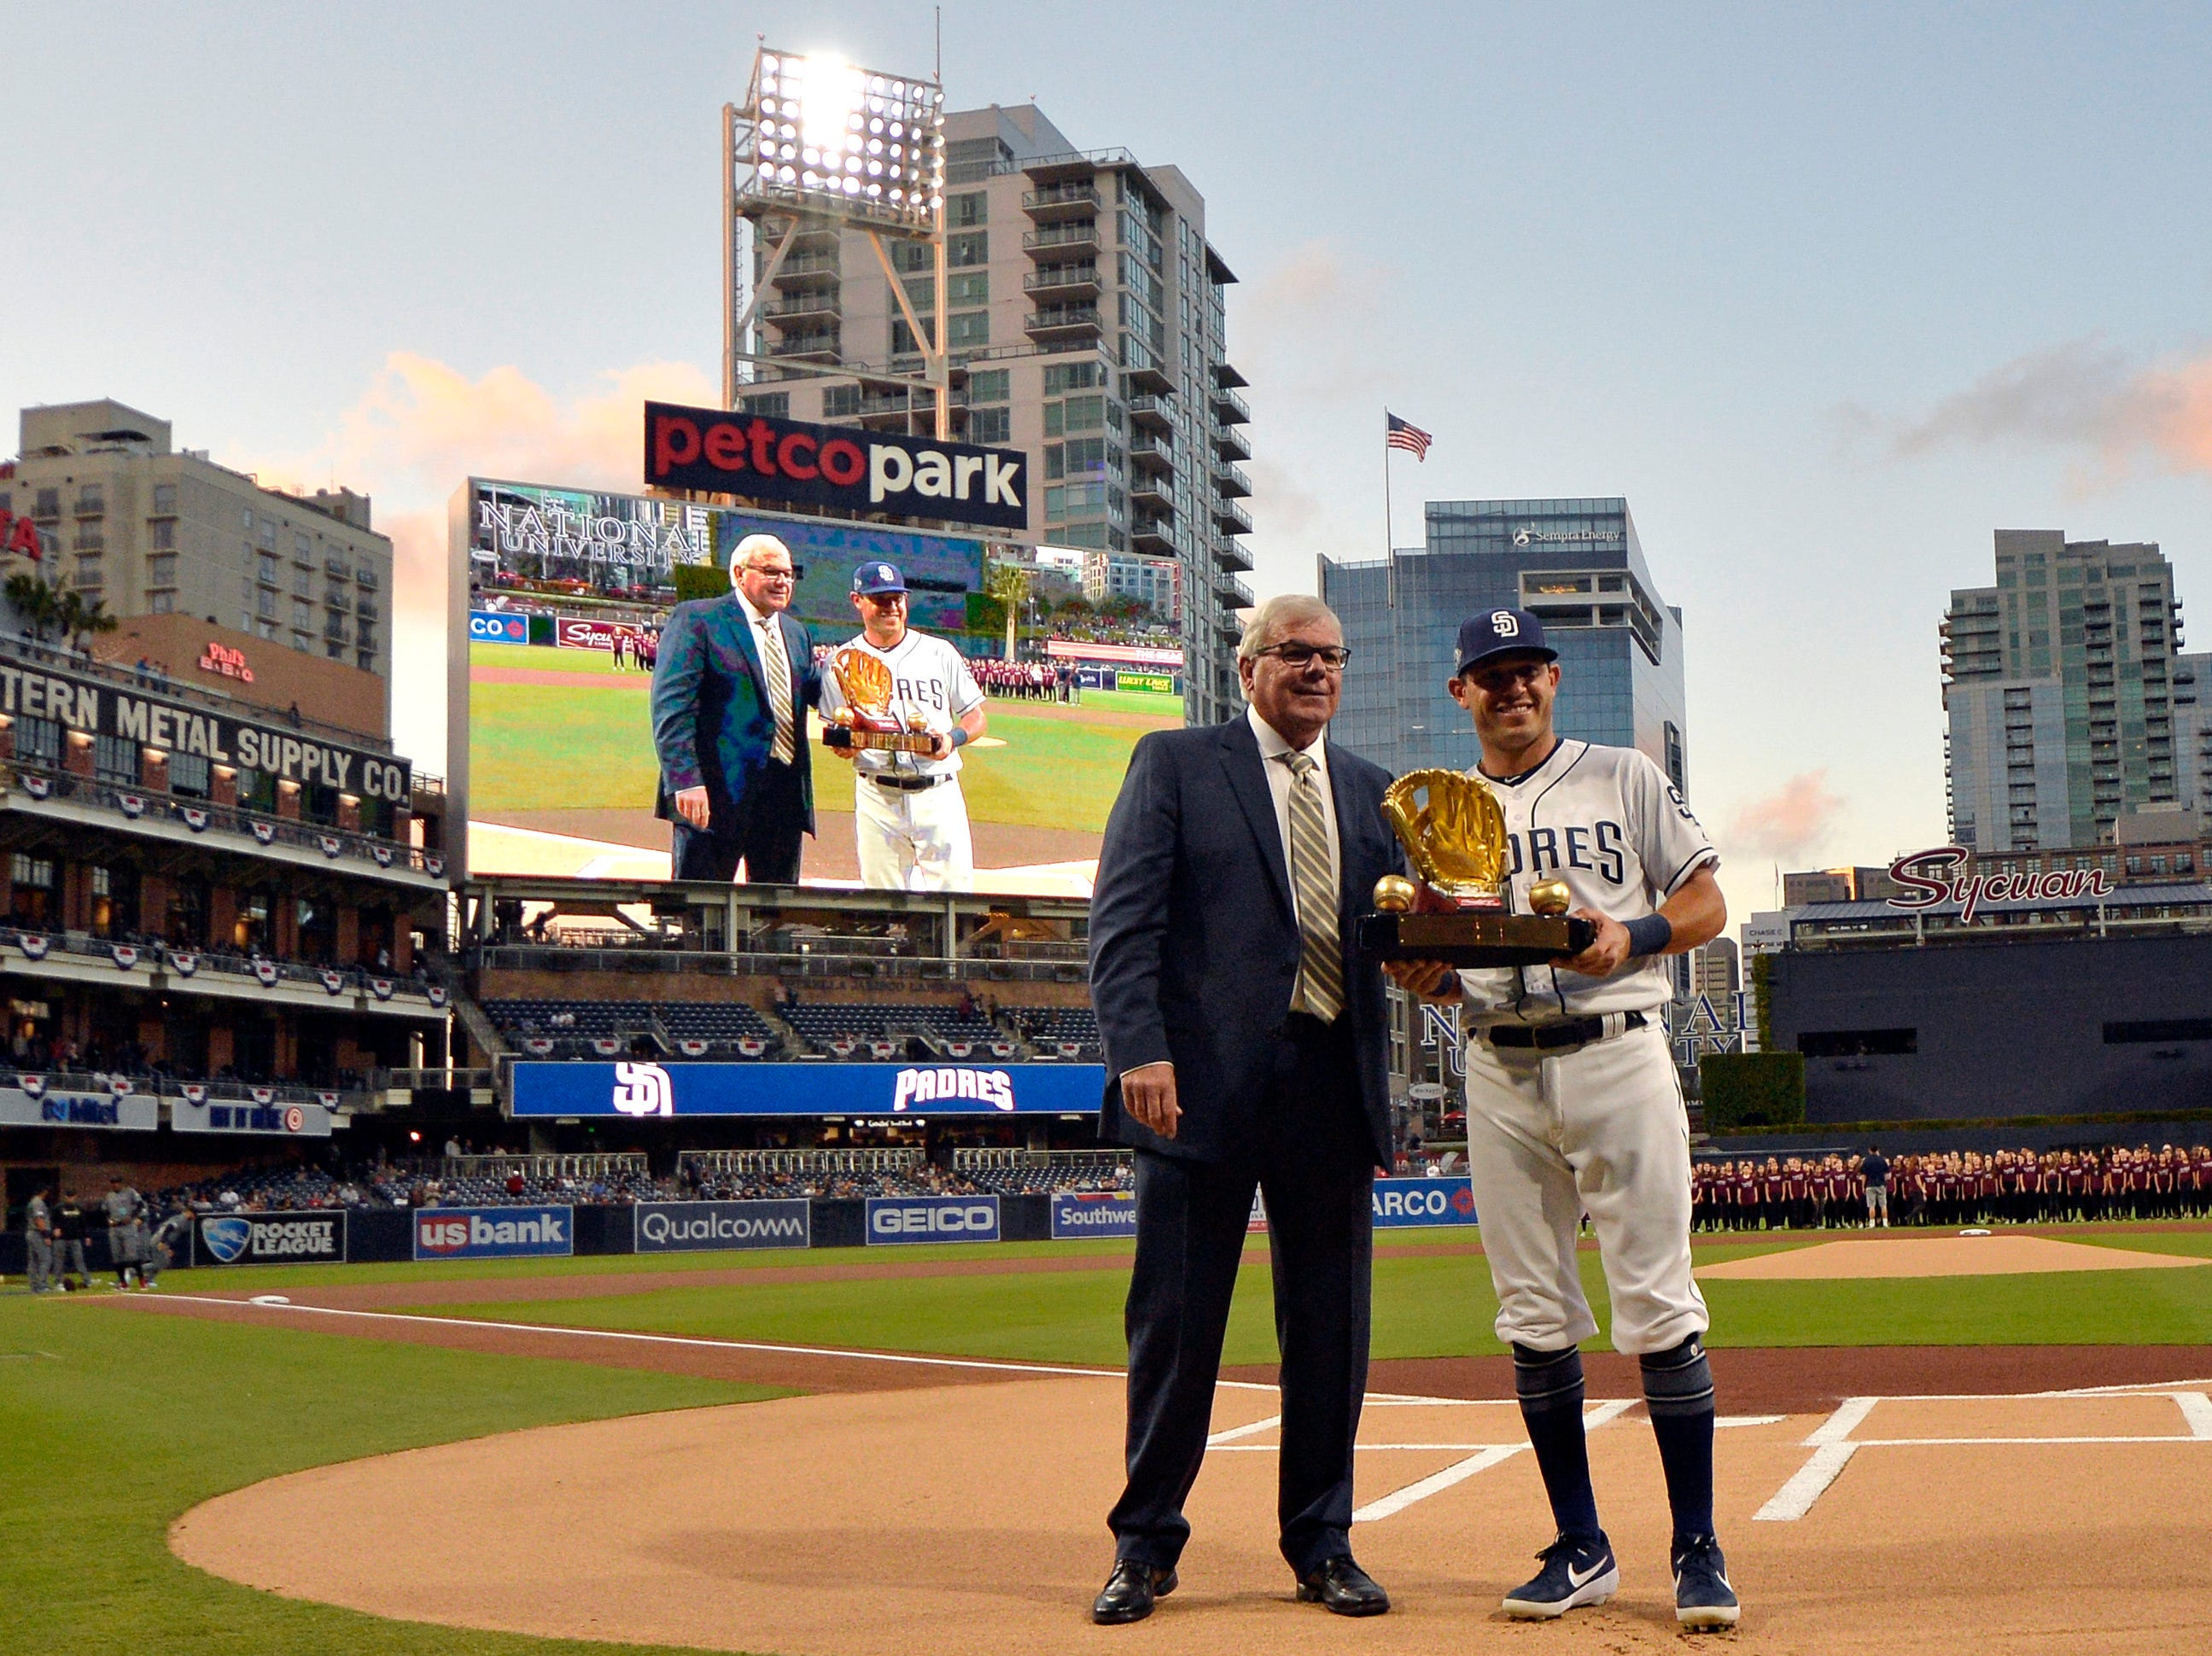 Apr 2, 2019; San Diego, CA, USA; San Diego Padres second baseman Ian Kinsler (right) is presented with his Golden Glove before a game against the Arizona Diamondbacks at Petco Park. Mandatory Credit: Jake Roth-USA TODAY Sports